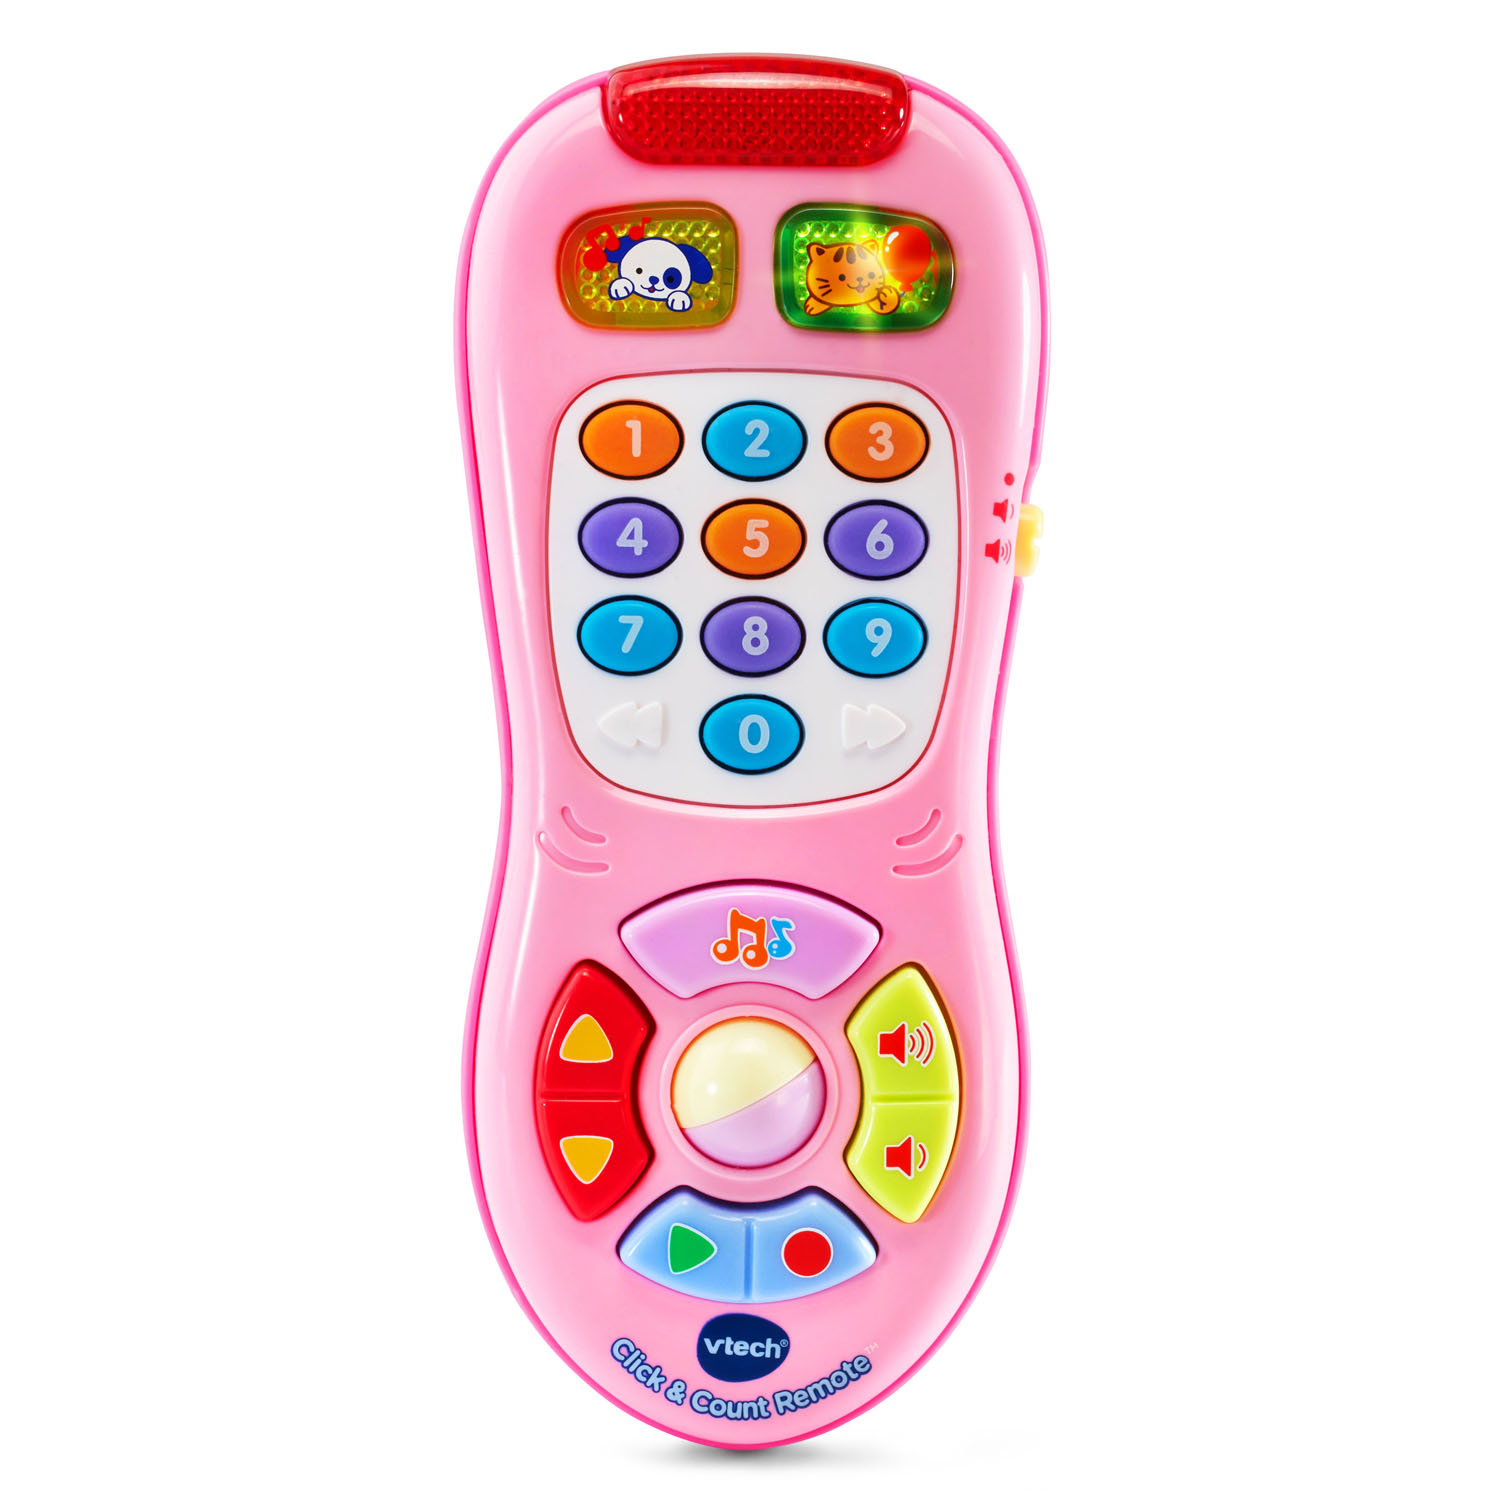 VTech® Click & Count Remote™